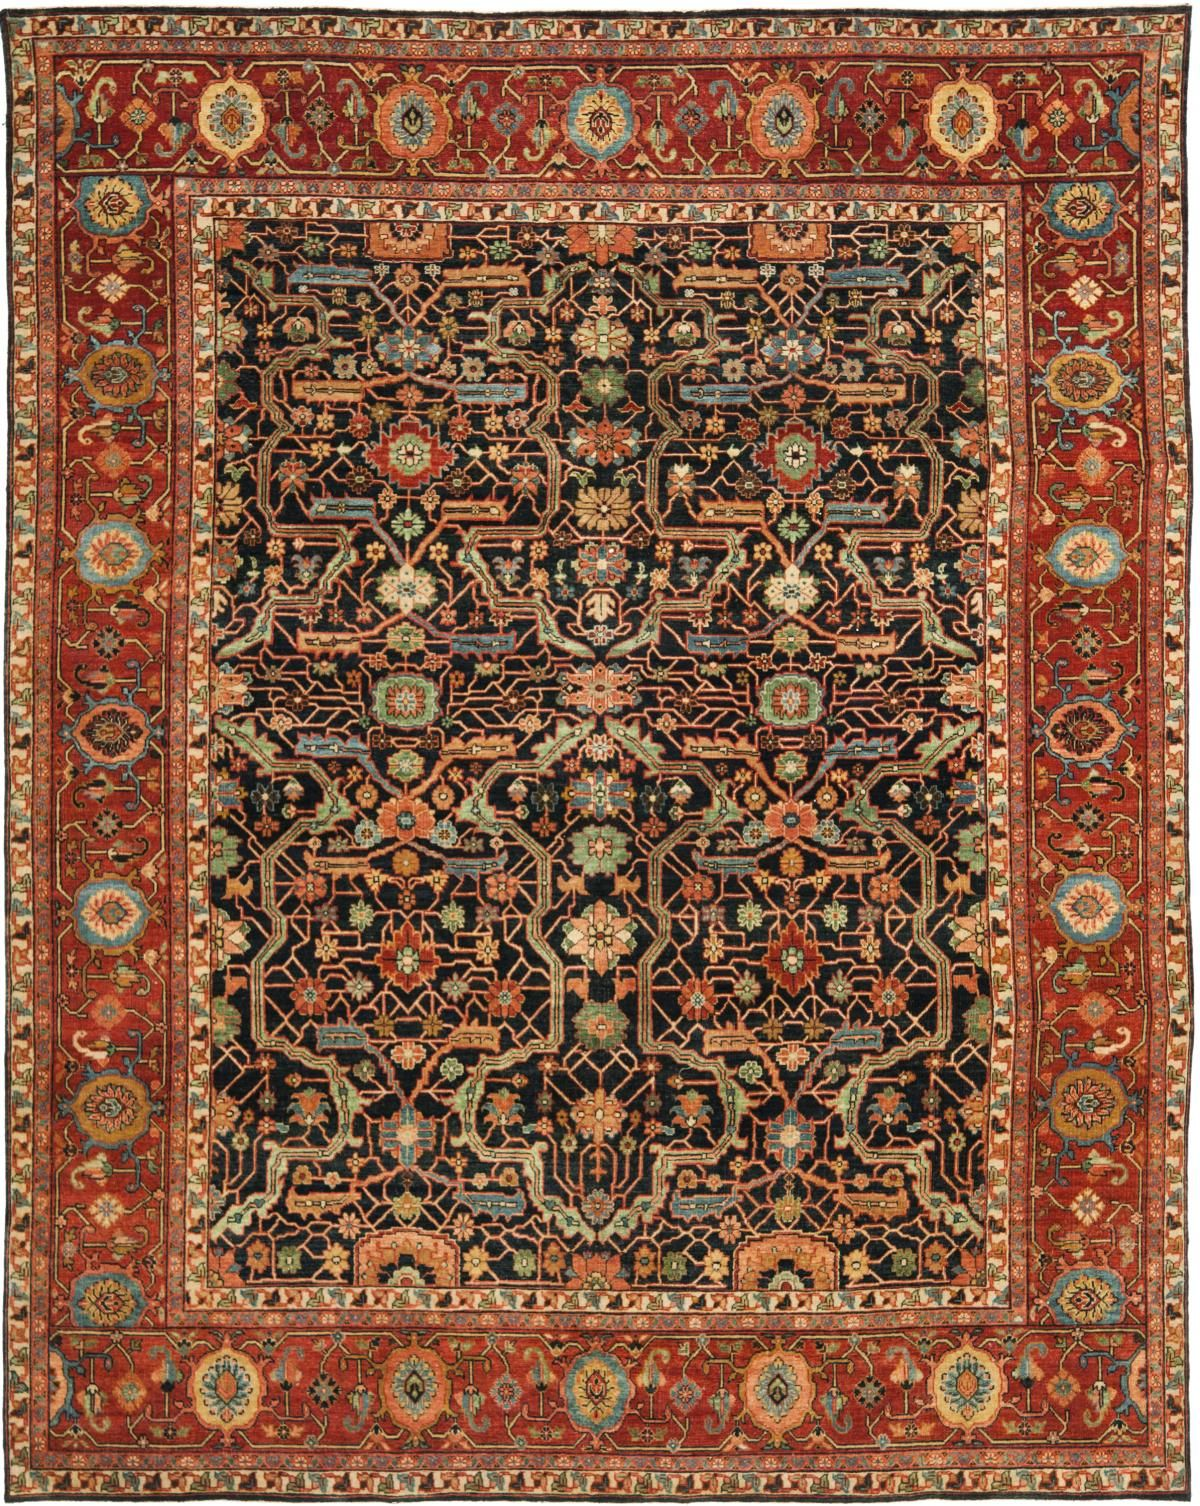 Richmond Rug From Ralph Lauren Collection Rich In History The Area Rugs Was Inspired By A Century Farahan Sarouk Carpet